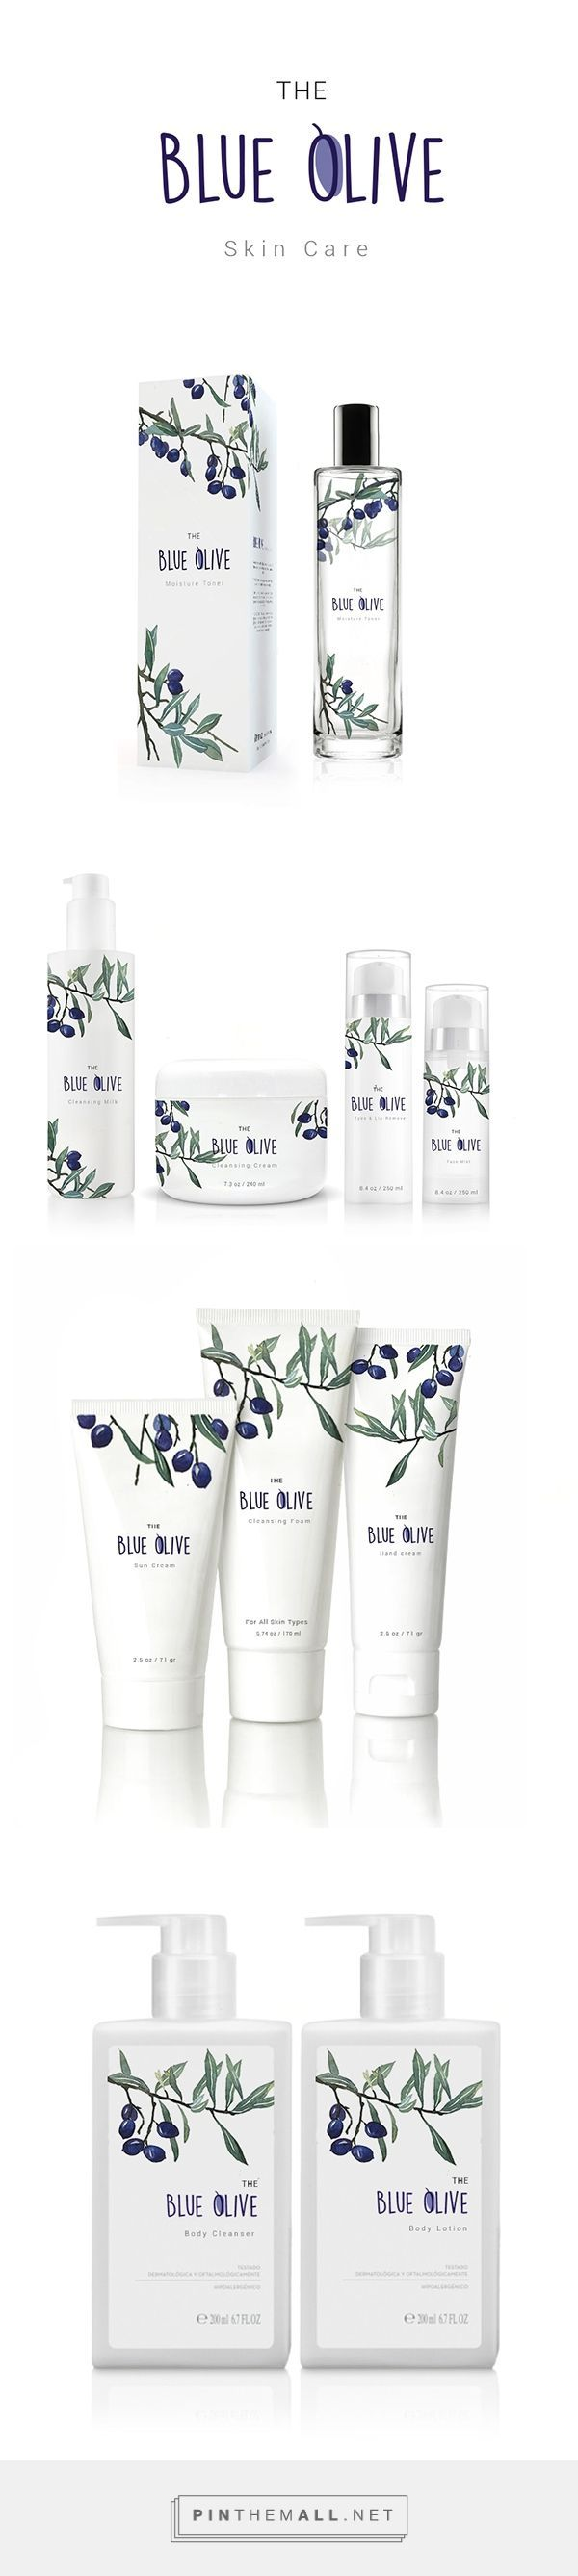 The blue olive's packaging / skin care || Weekly packaging inspiration for everyone! Introducing Moire Studios a thriving website and graphic design studio. Feel Free to Follow us @moirestudiosjkt to see more outstanding pins like this. Or visit our website www.moirestudiosjkt.com to know more about us. #packaging #graphicDesign ||